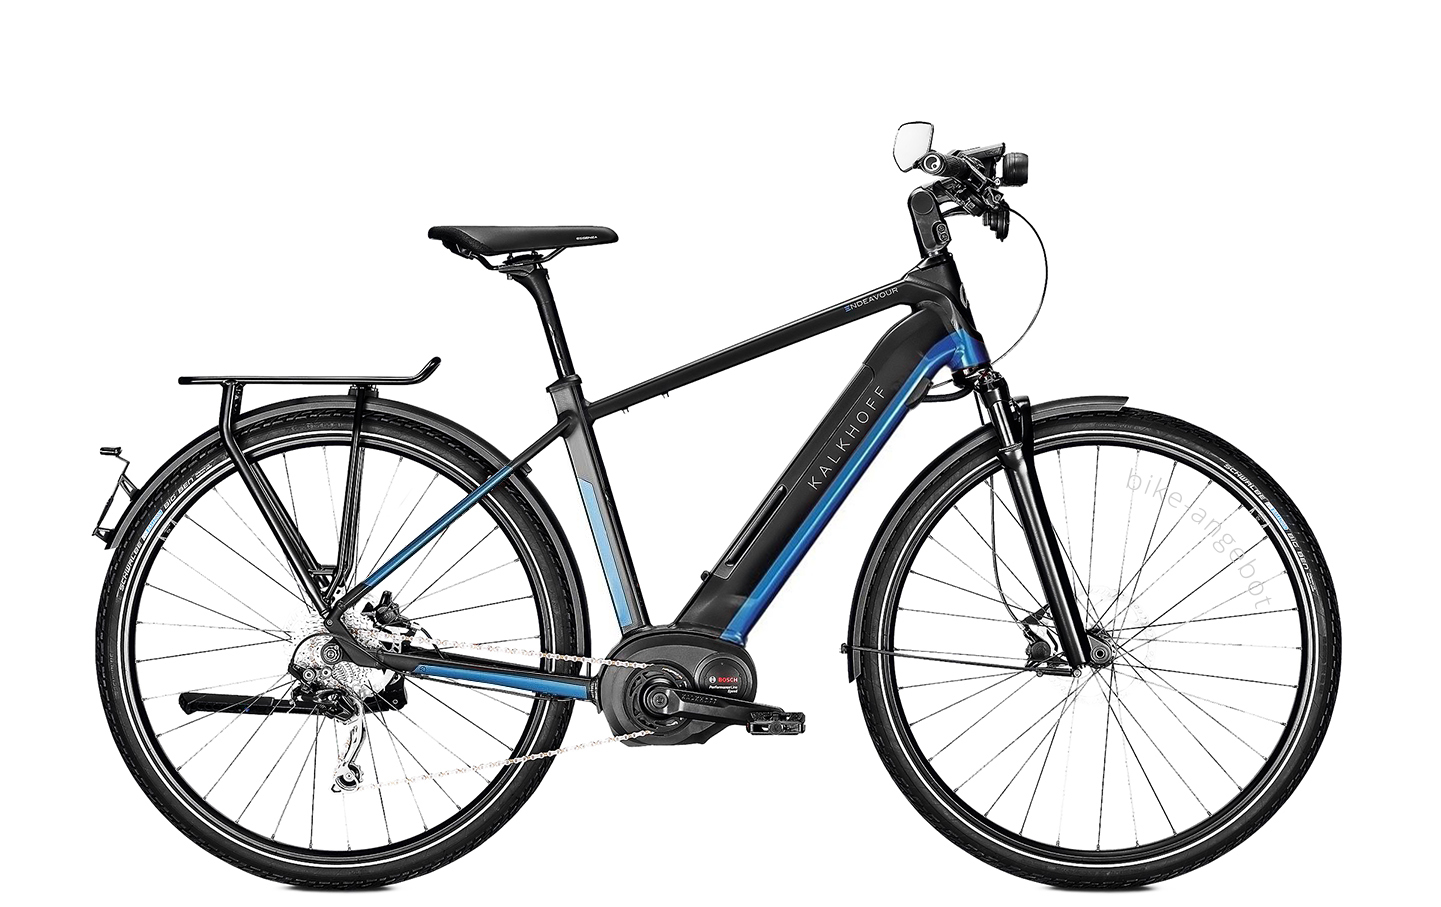 Kalkhoff ENDEAVOUR 5.B MOVE - 28 Diamant 482 Wh -  magicblack/pacificblue glossy 2019